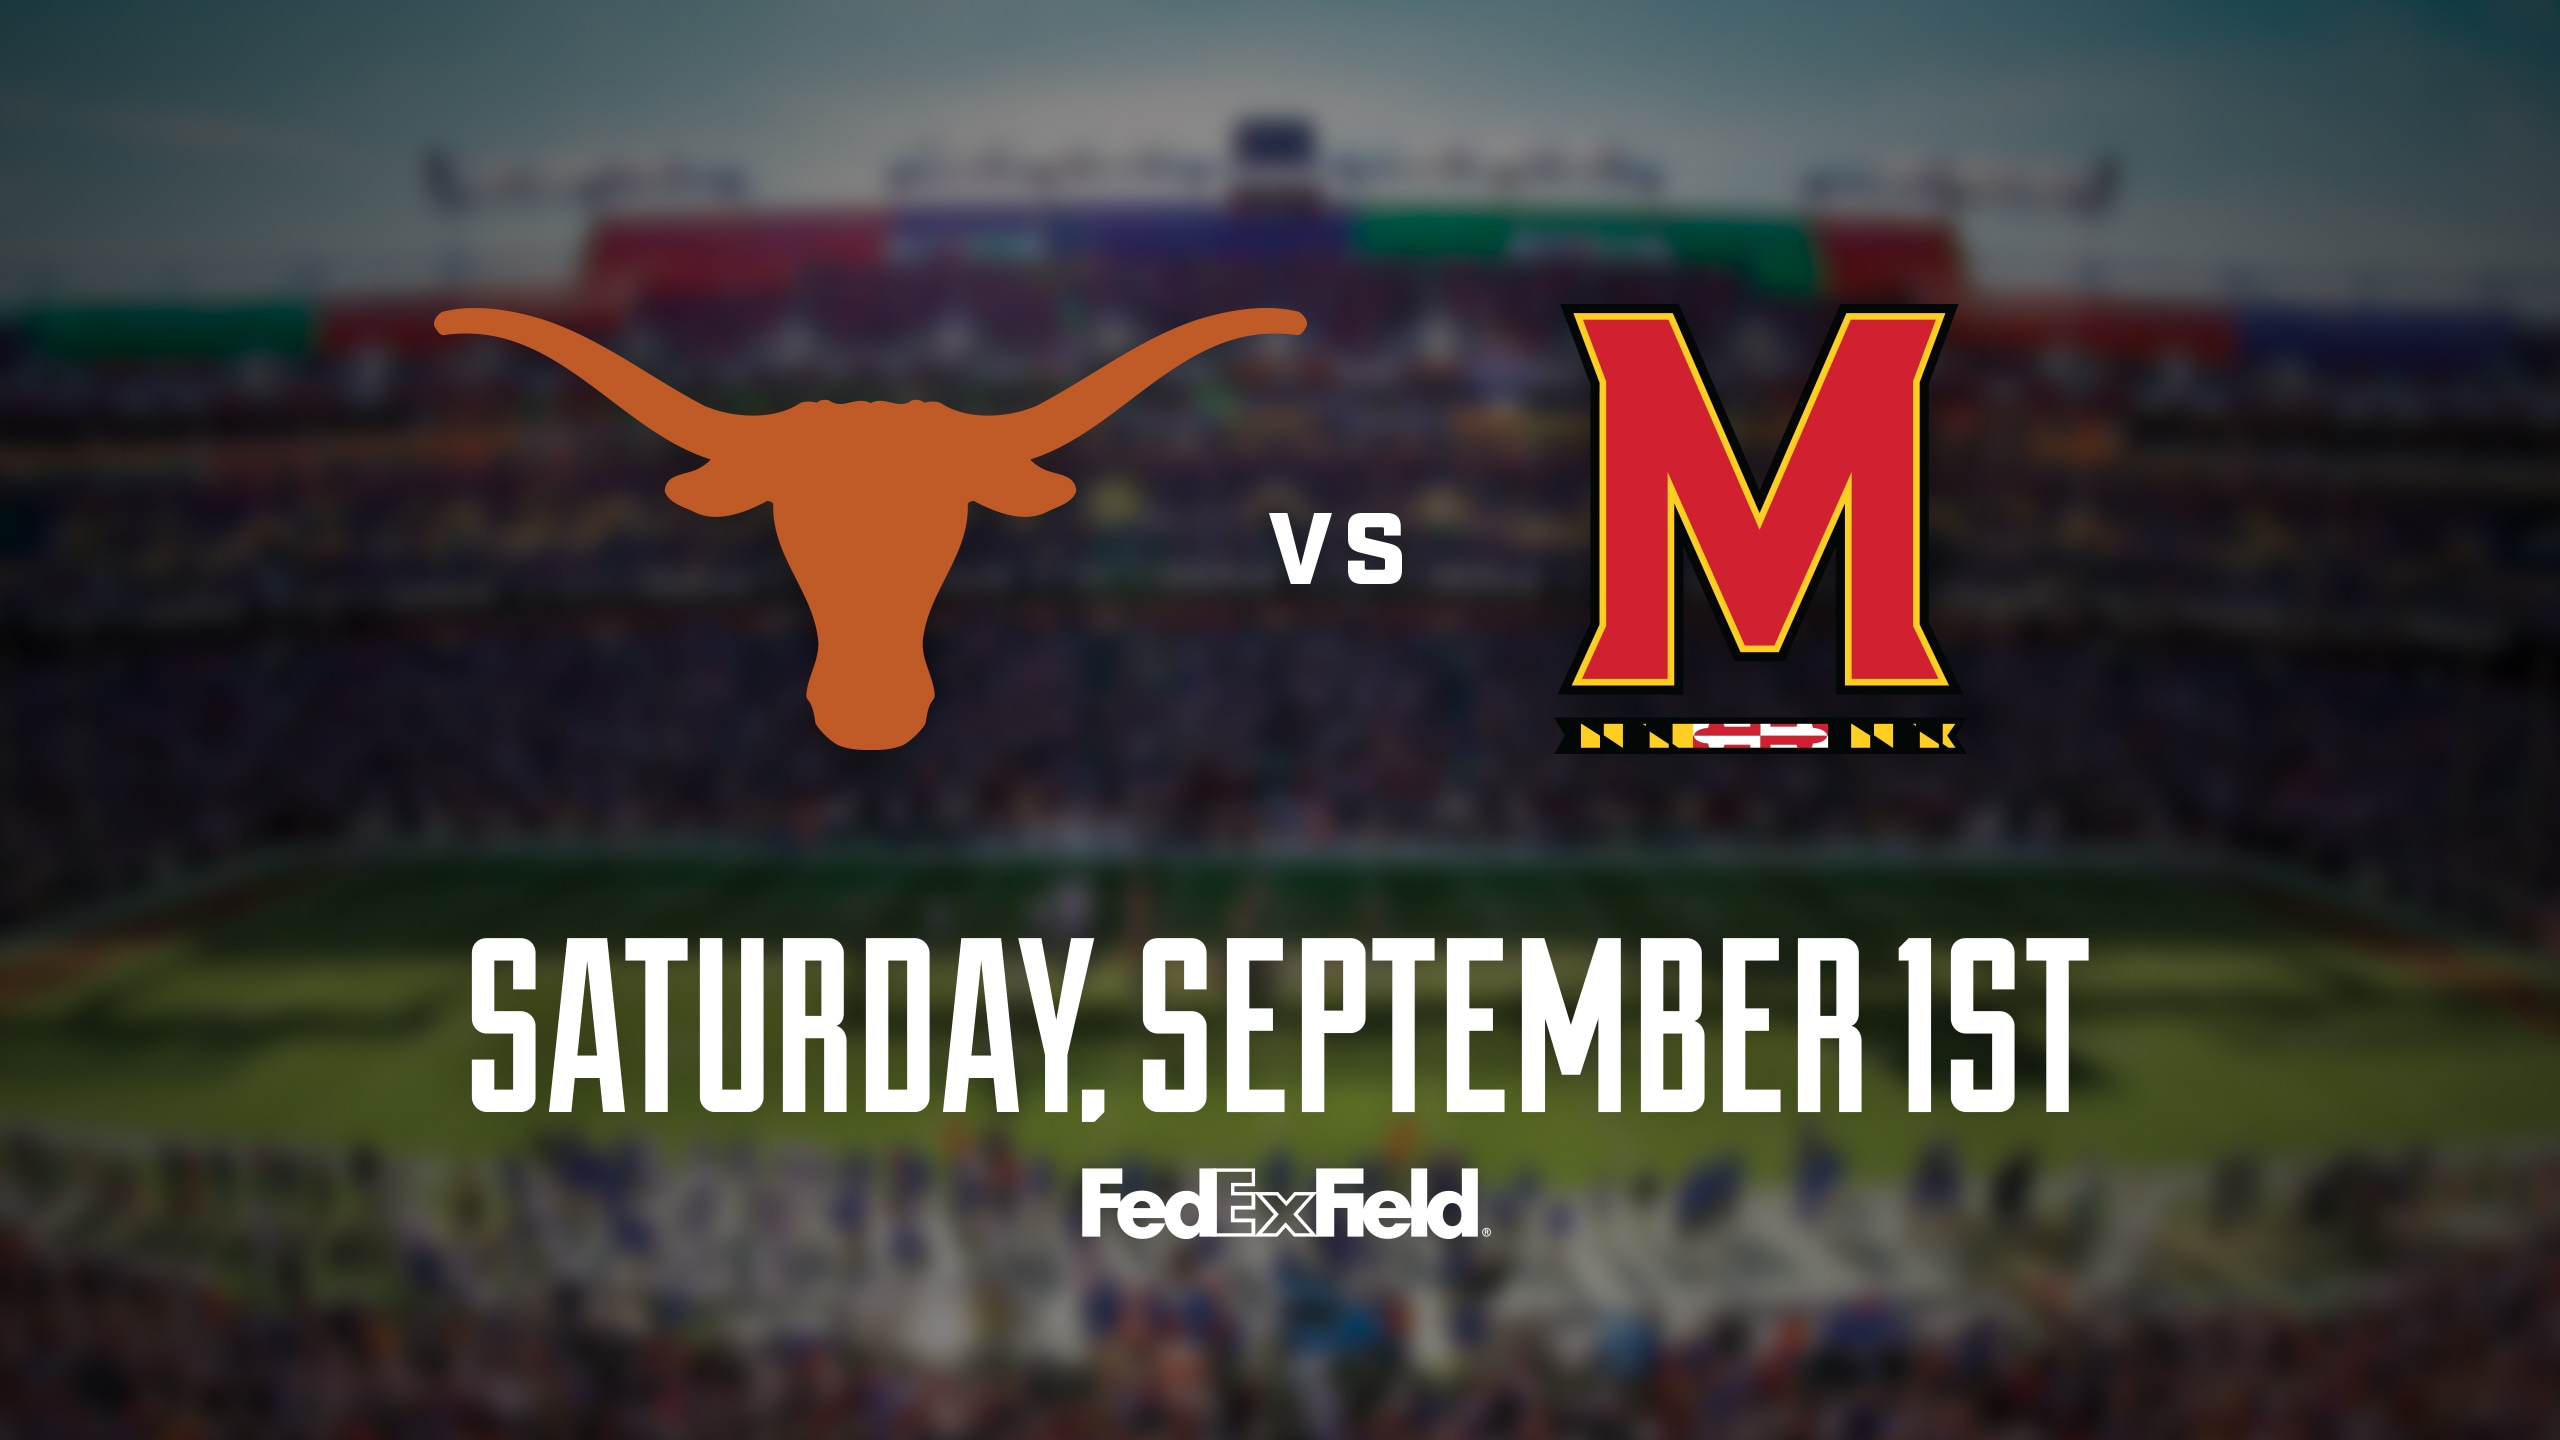 FedEx Field – Texas vs. Maryland Football